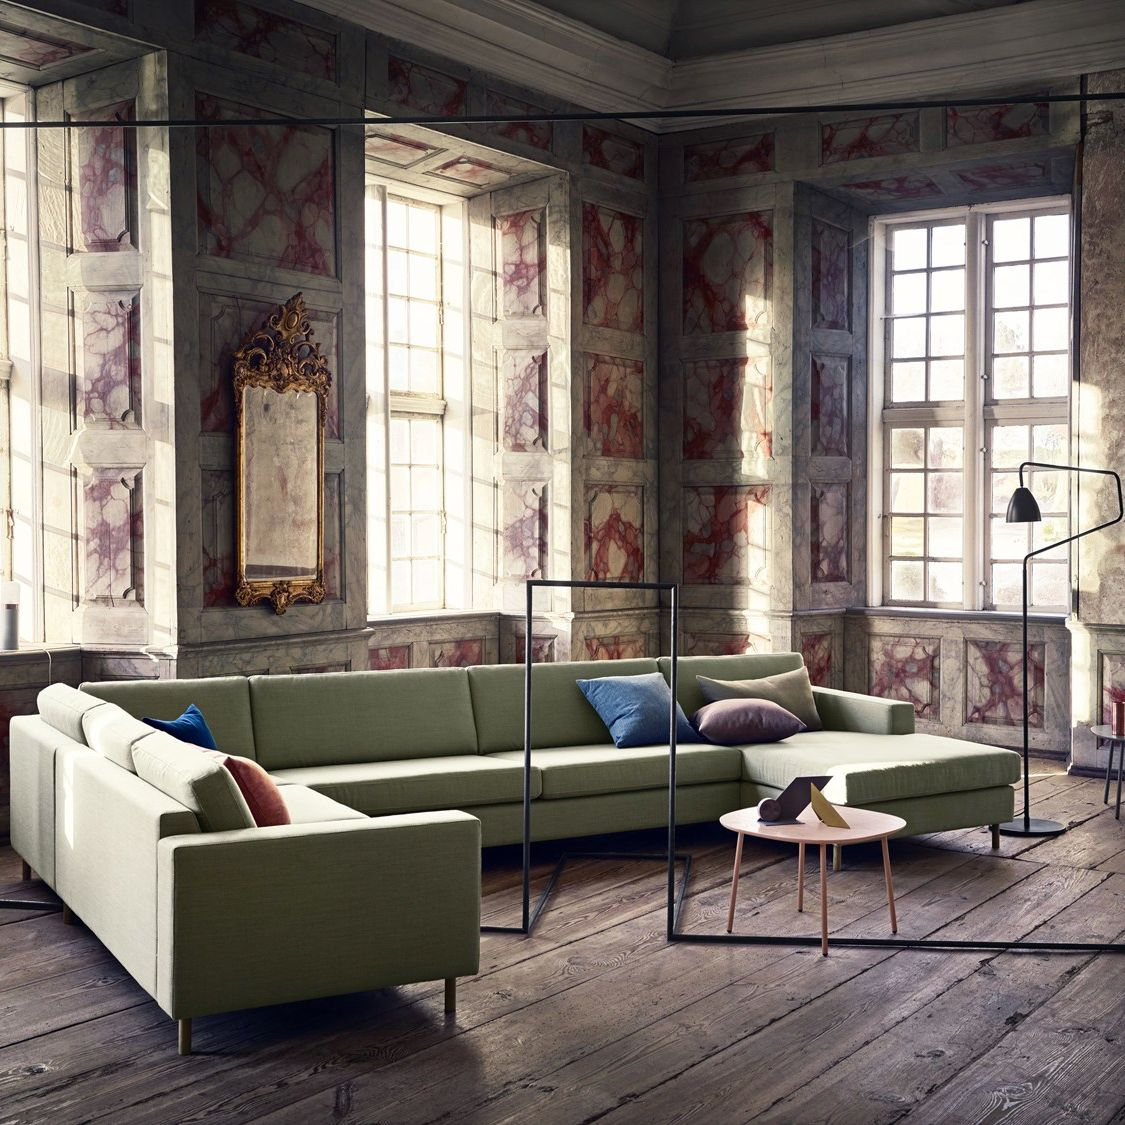 10 High End And Handsome Contemporary Sofas Home Decor Contemporary Sofa Home